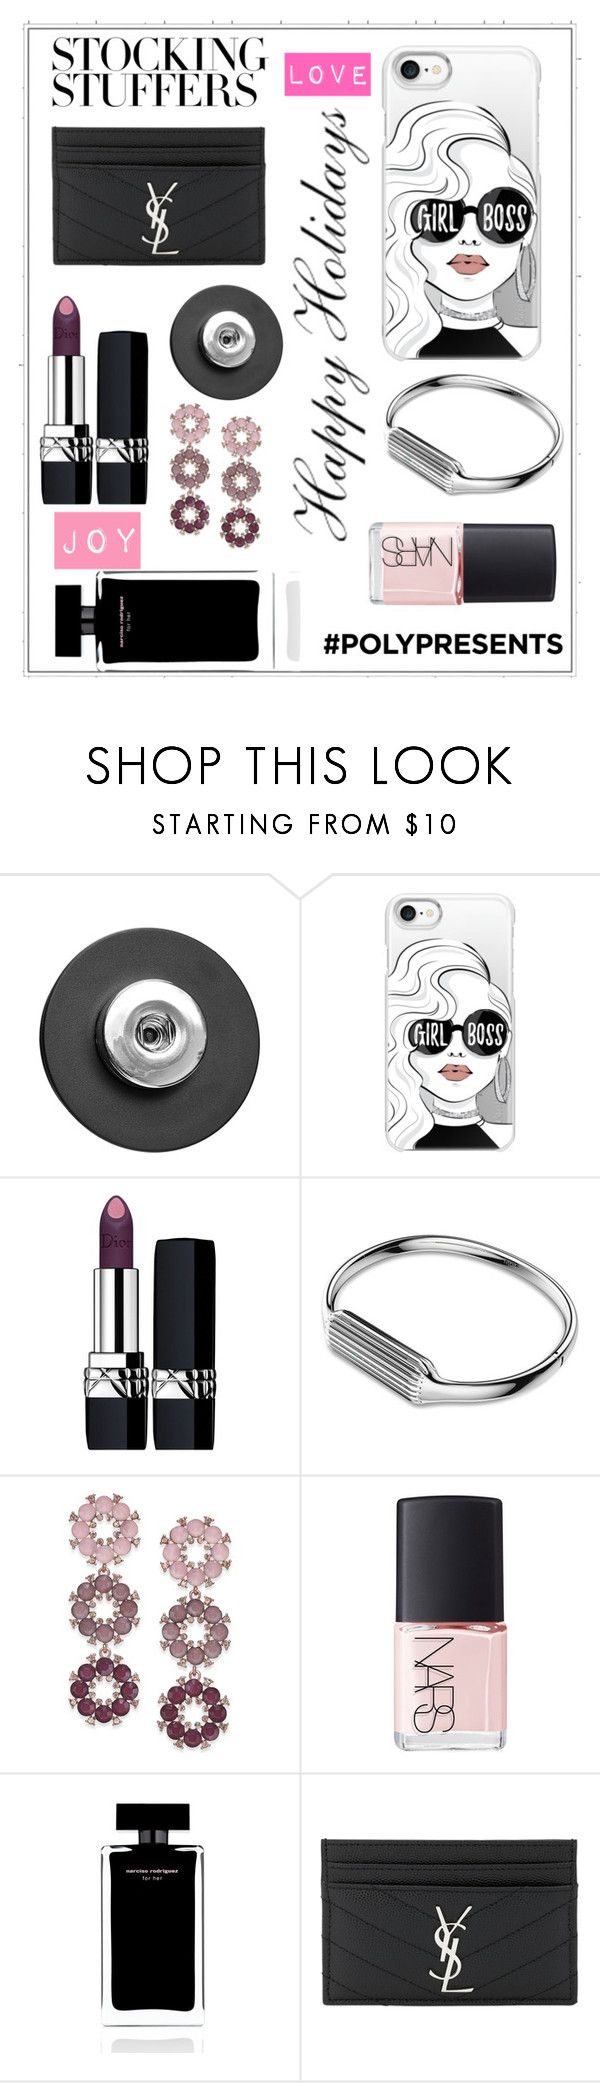 """""""#PolyPresents: Stocking Stuffers"""" by shamrockclover ❤ liked on Polyvore featuring Snap Jewels, Casetify, Christian Dior, Fitbit, INC International Concepts, NARS Cosmetics, Narciso Rodriguez, Yves Saint Laurent, contestentry and polyPresents"""